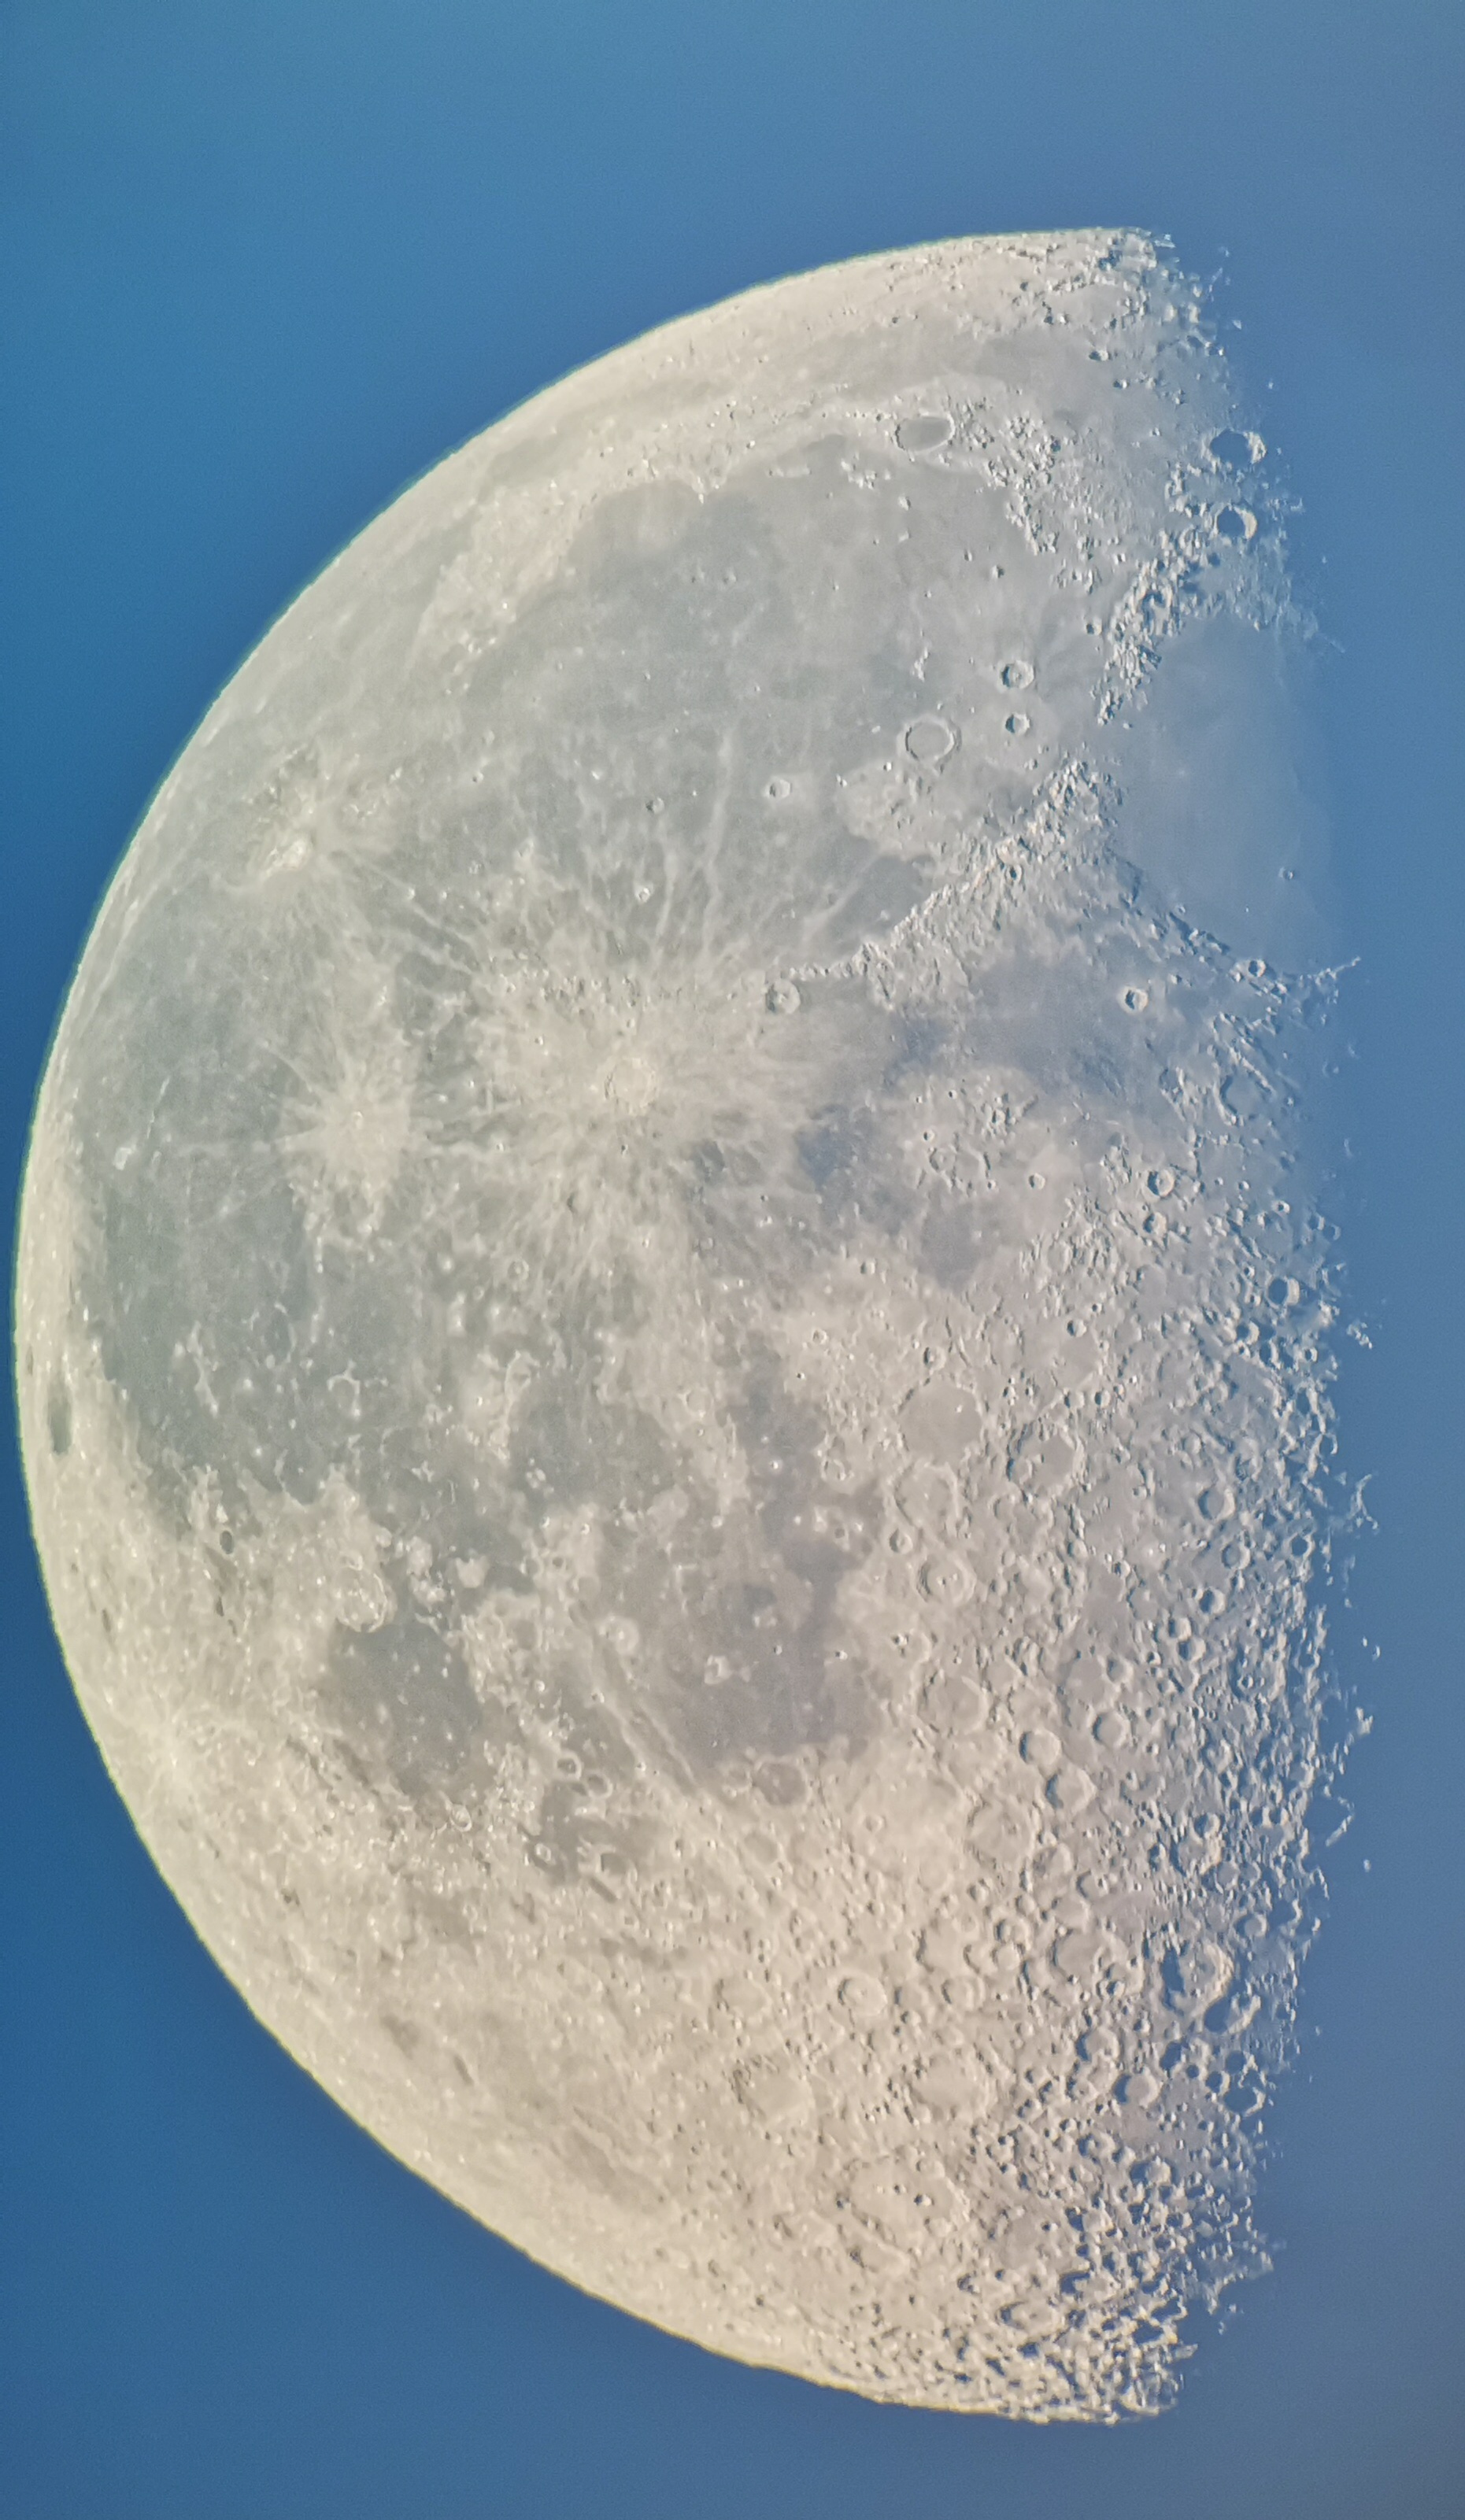 Lune_20190225_080200_descendante.jpg